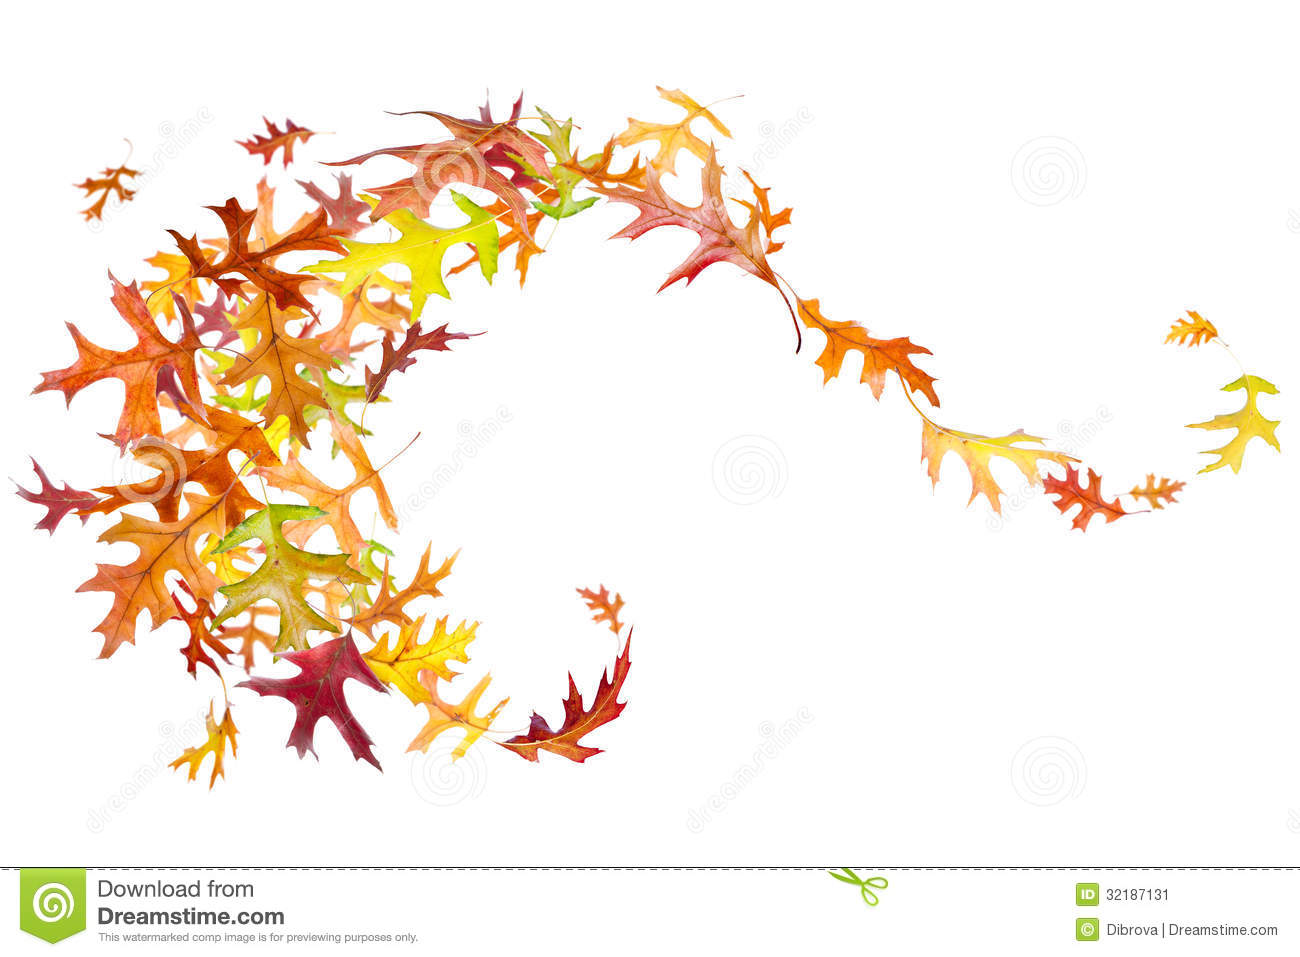 Fall Of The Leafe Wallpaper Leaves Blowing In The Wind Drawing At Getdrawings Com